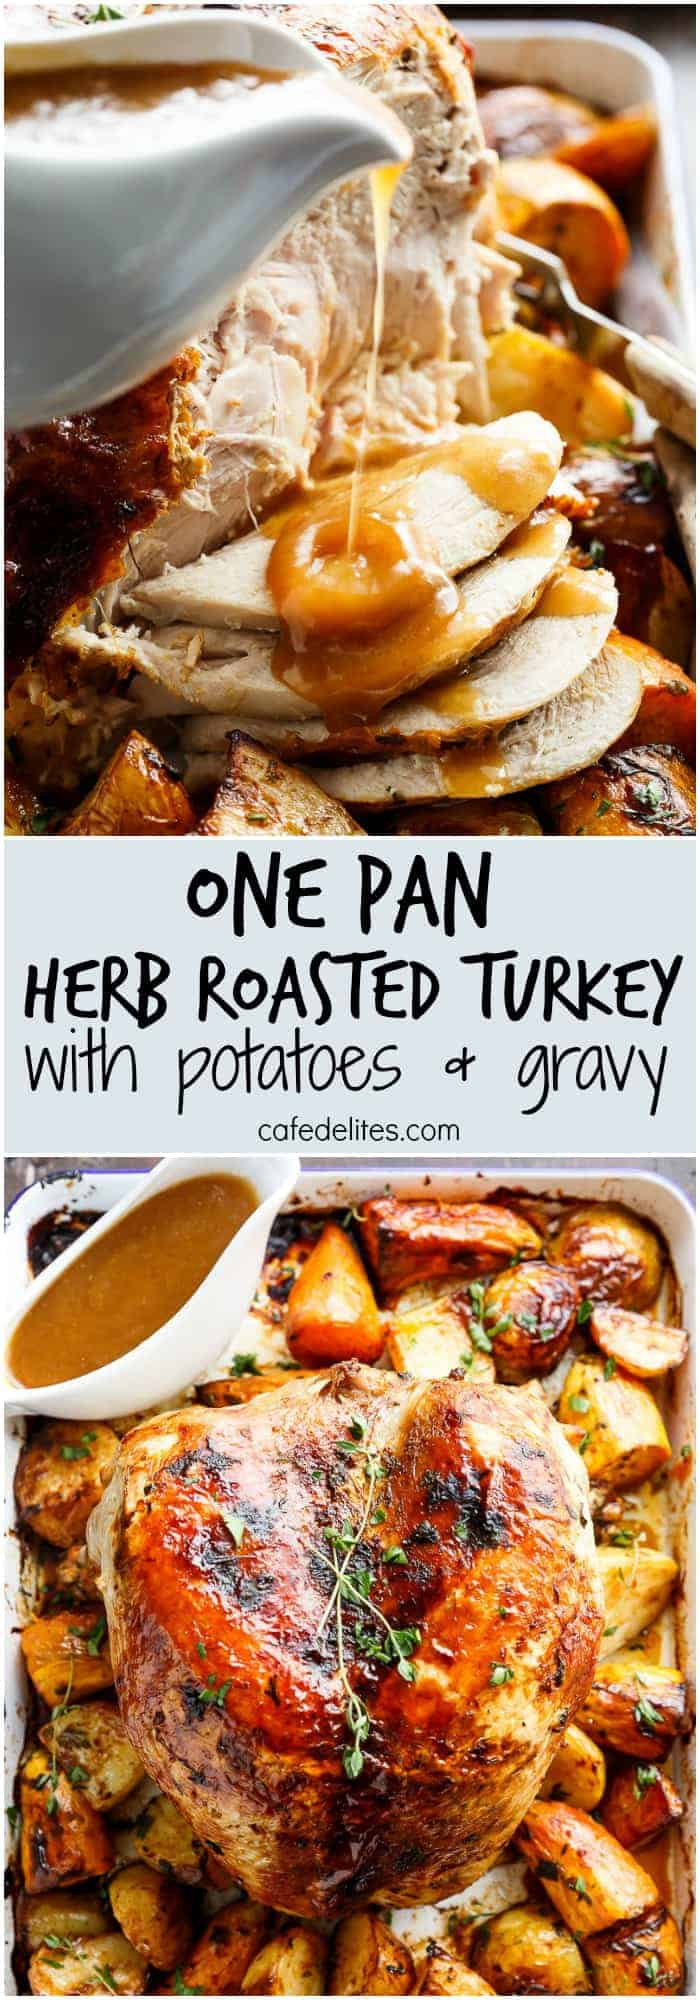 One Pan Juicy Herb Roasted Turkey & Potatoes, with a flavourful gravy made with only 3 ingredients, just in time for Thanksgiving menu planning! | https://cafedelites.com